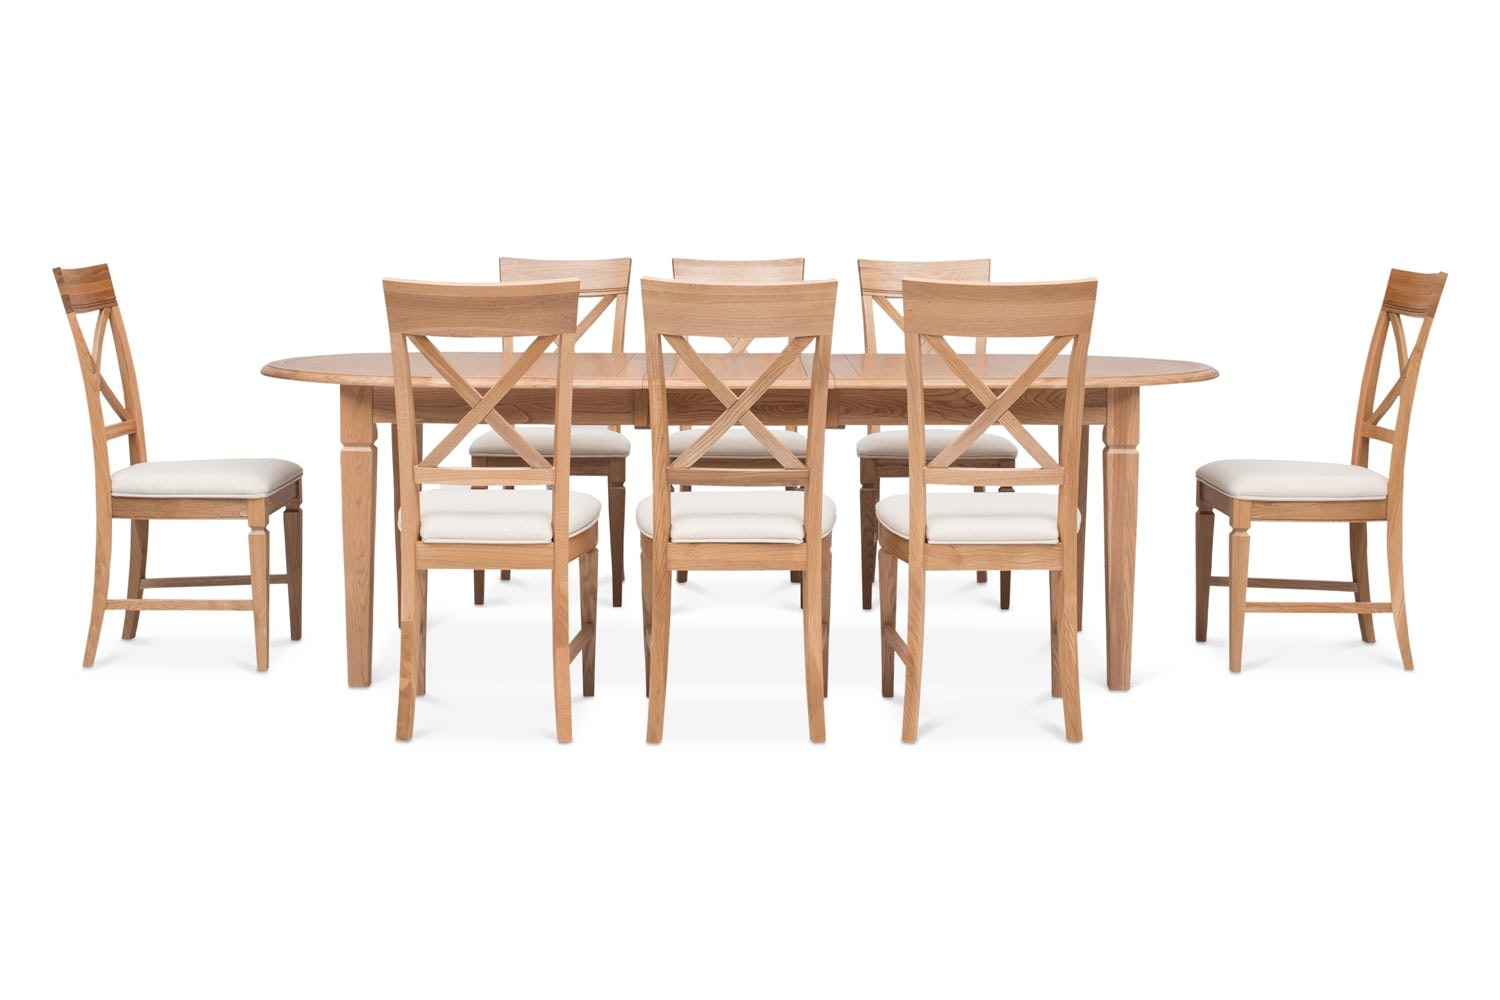 Prunella 9 Piece Dining Set | Oval Extending Table